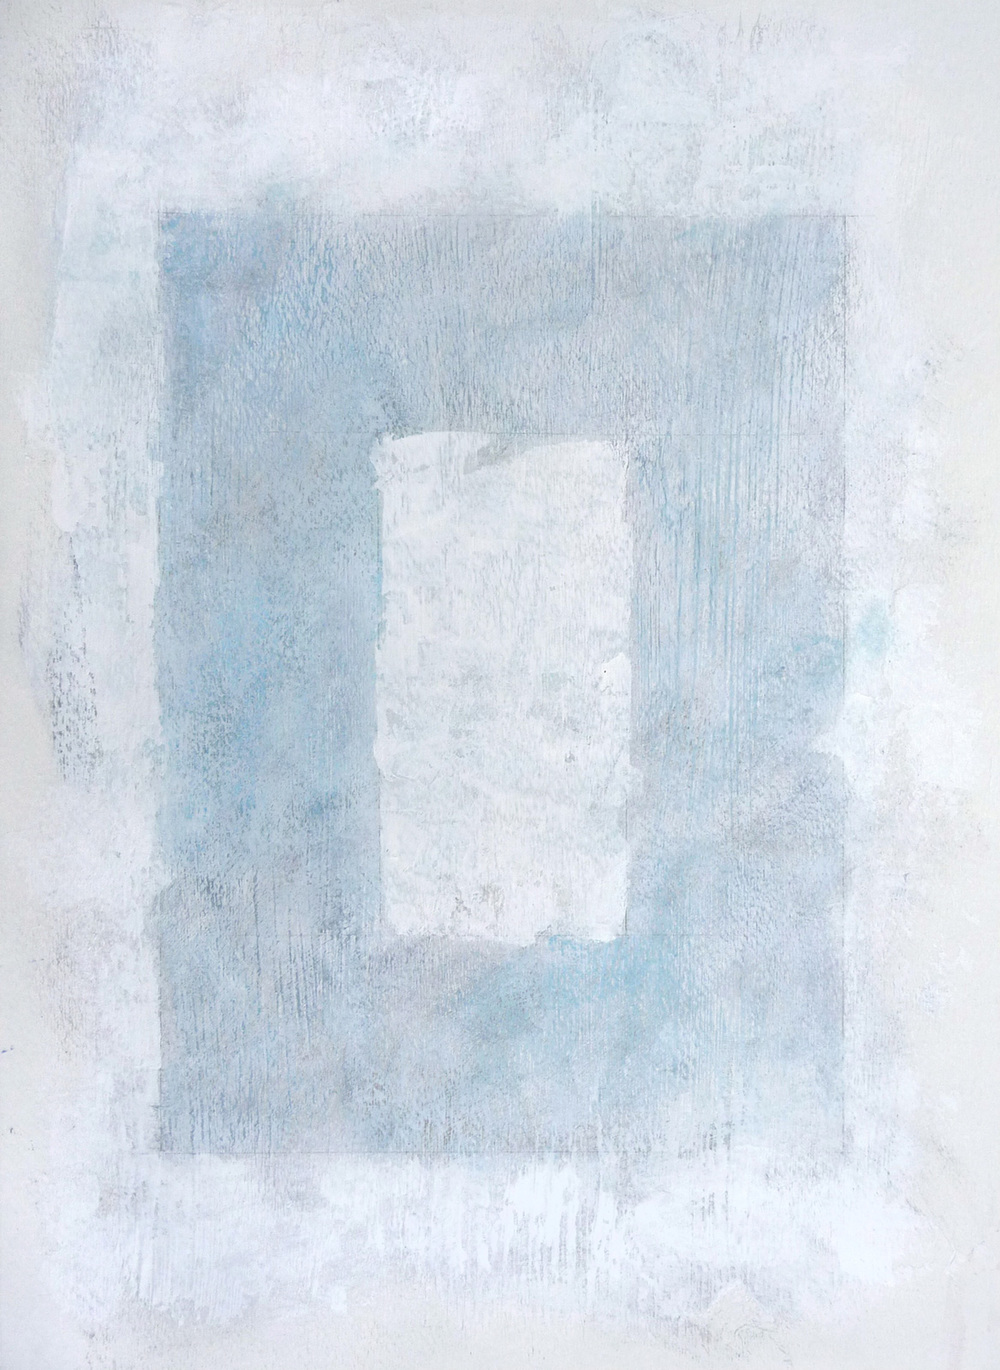 Svinøya in White IV  , 2016. Mixed media on paper. 15 x 11 inches (38.1 x 27.9 cm)